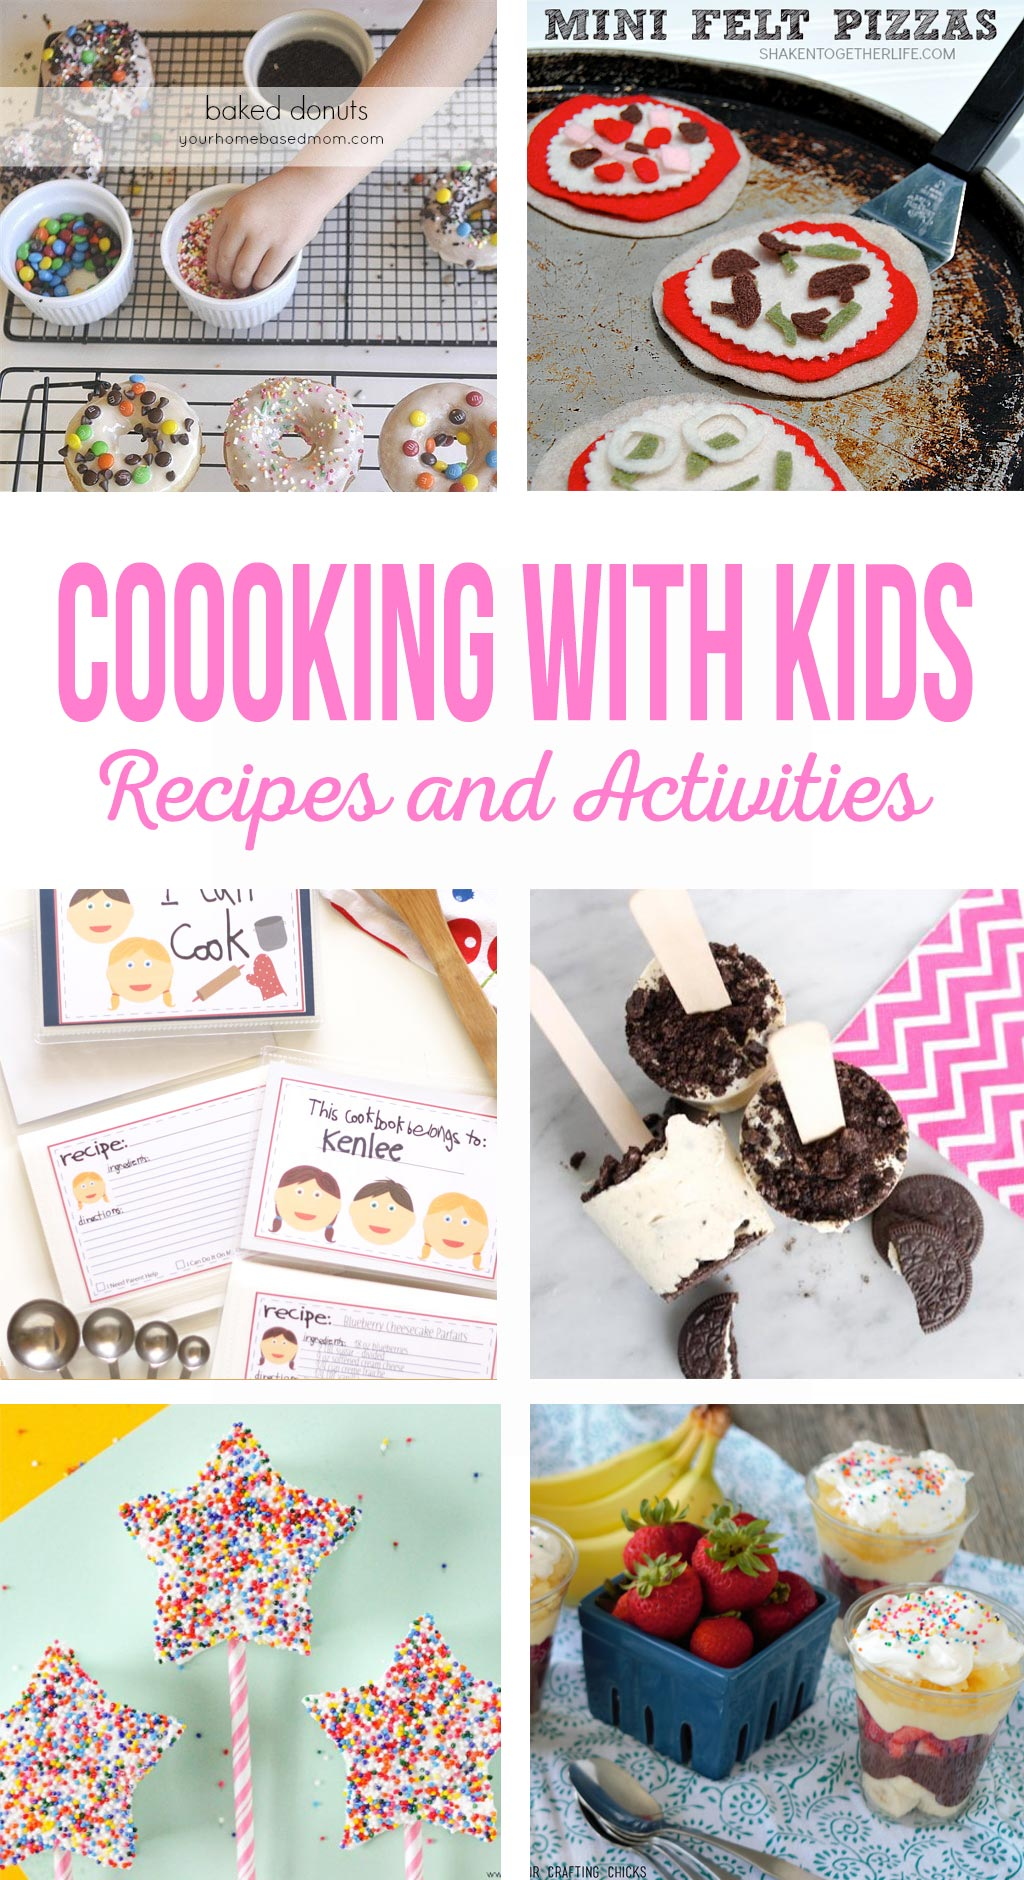 Cooking with Kids - Recipes and Activities - The Crafting Chicks